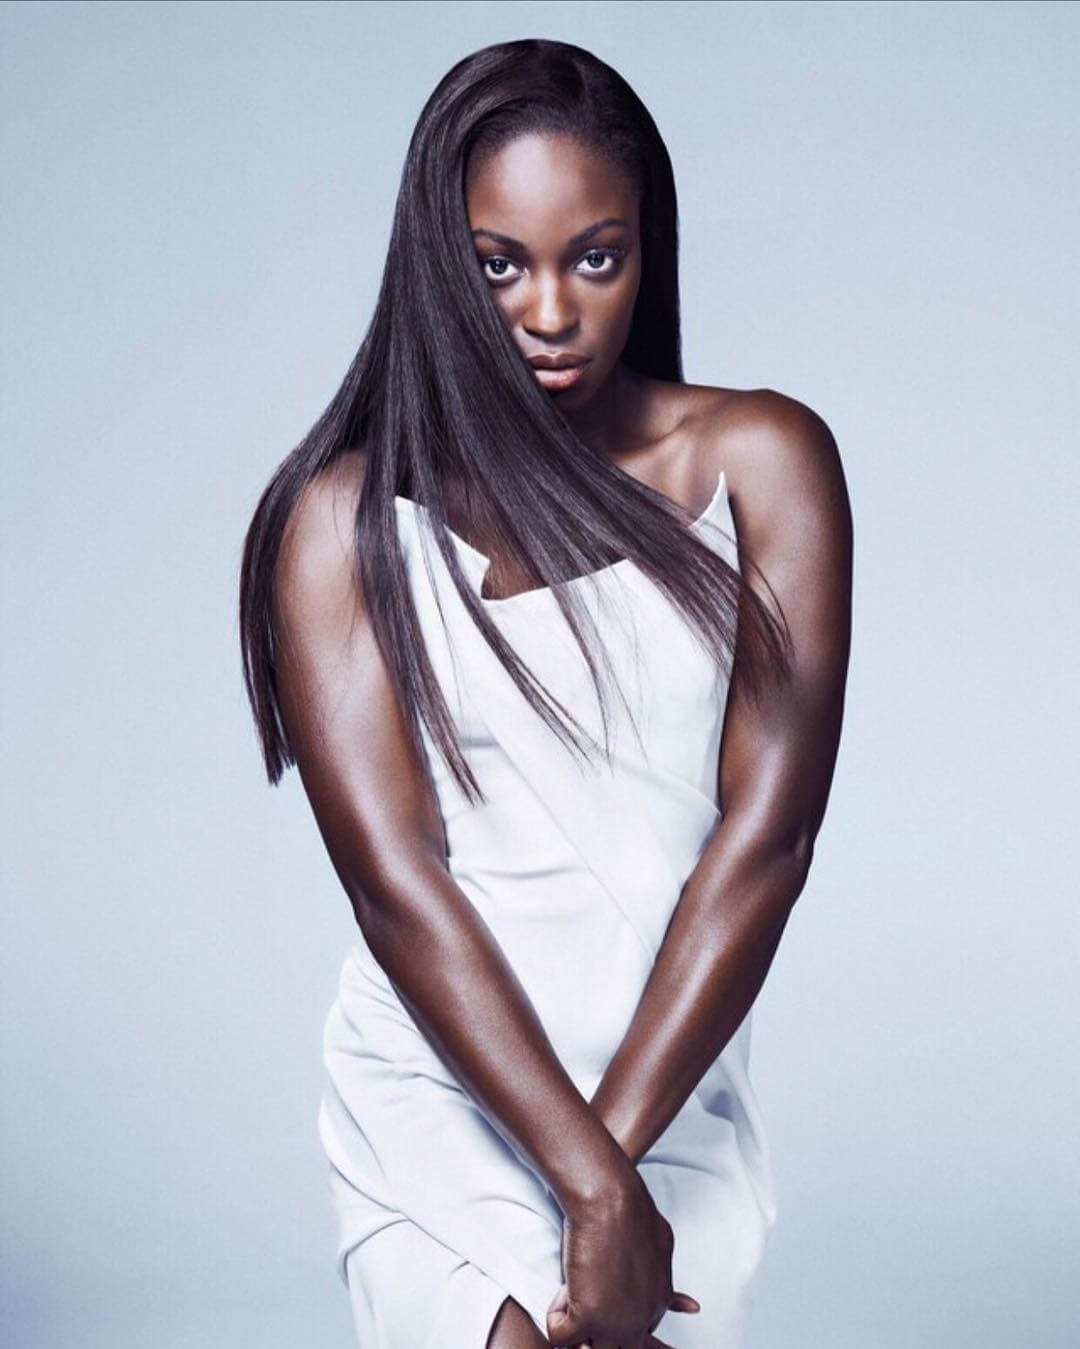 Sloane Stephens hot cleavage pics